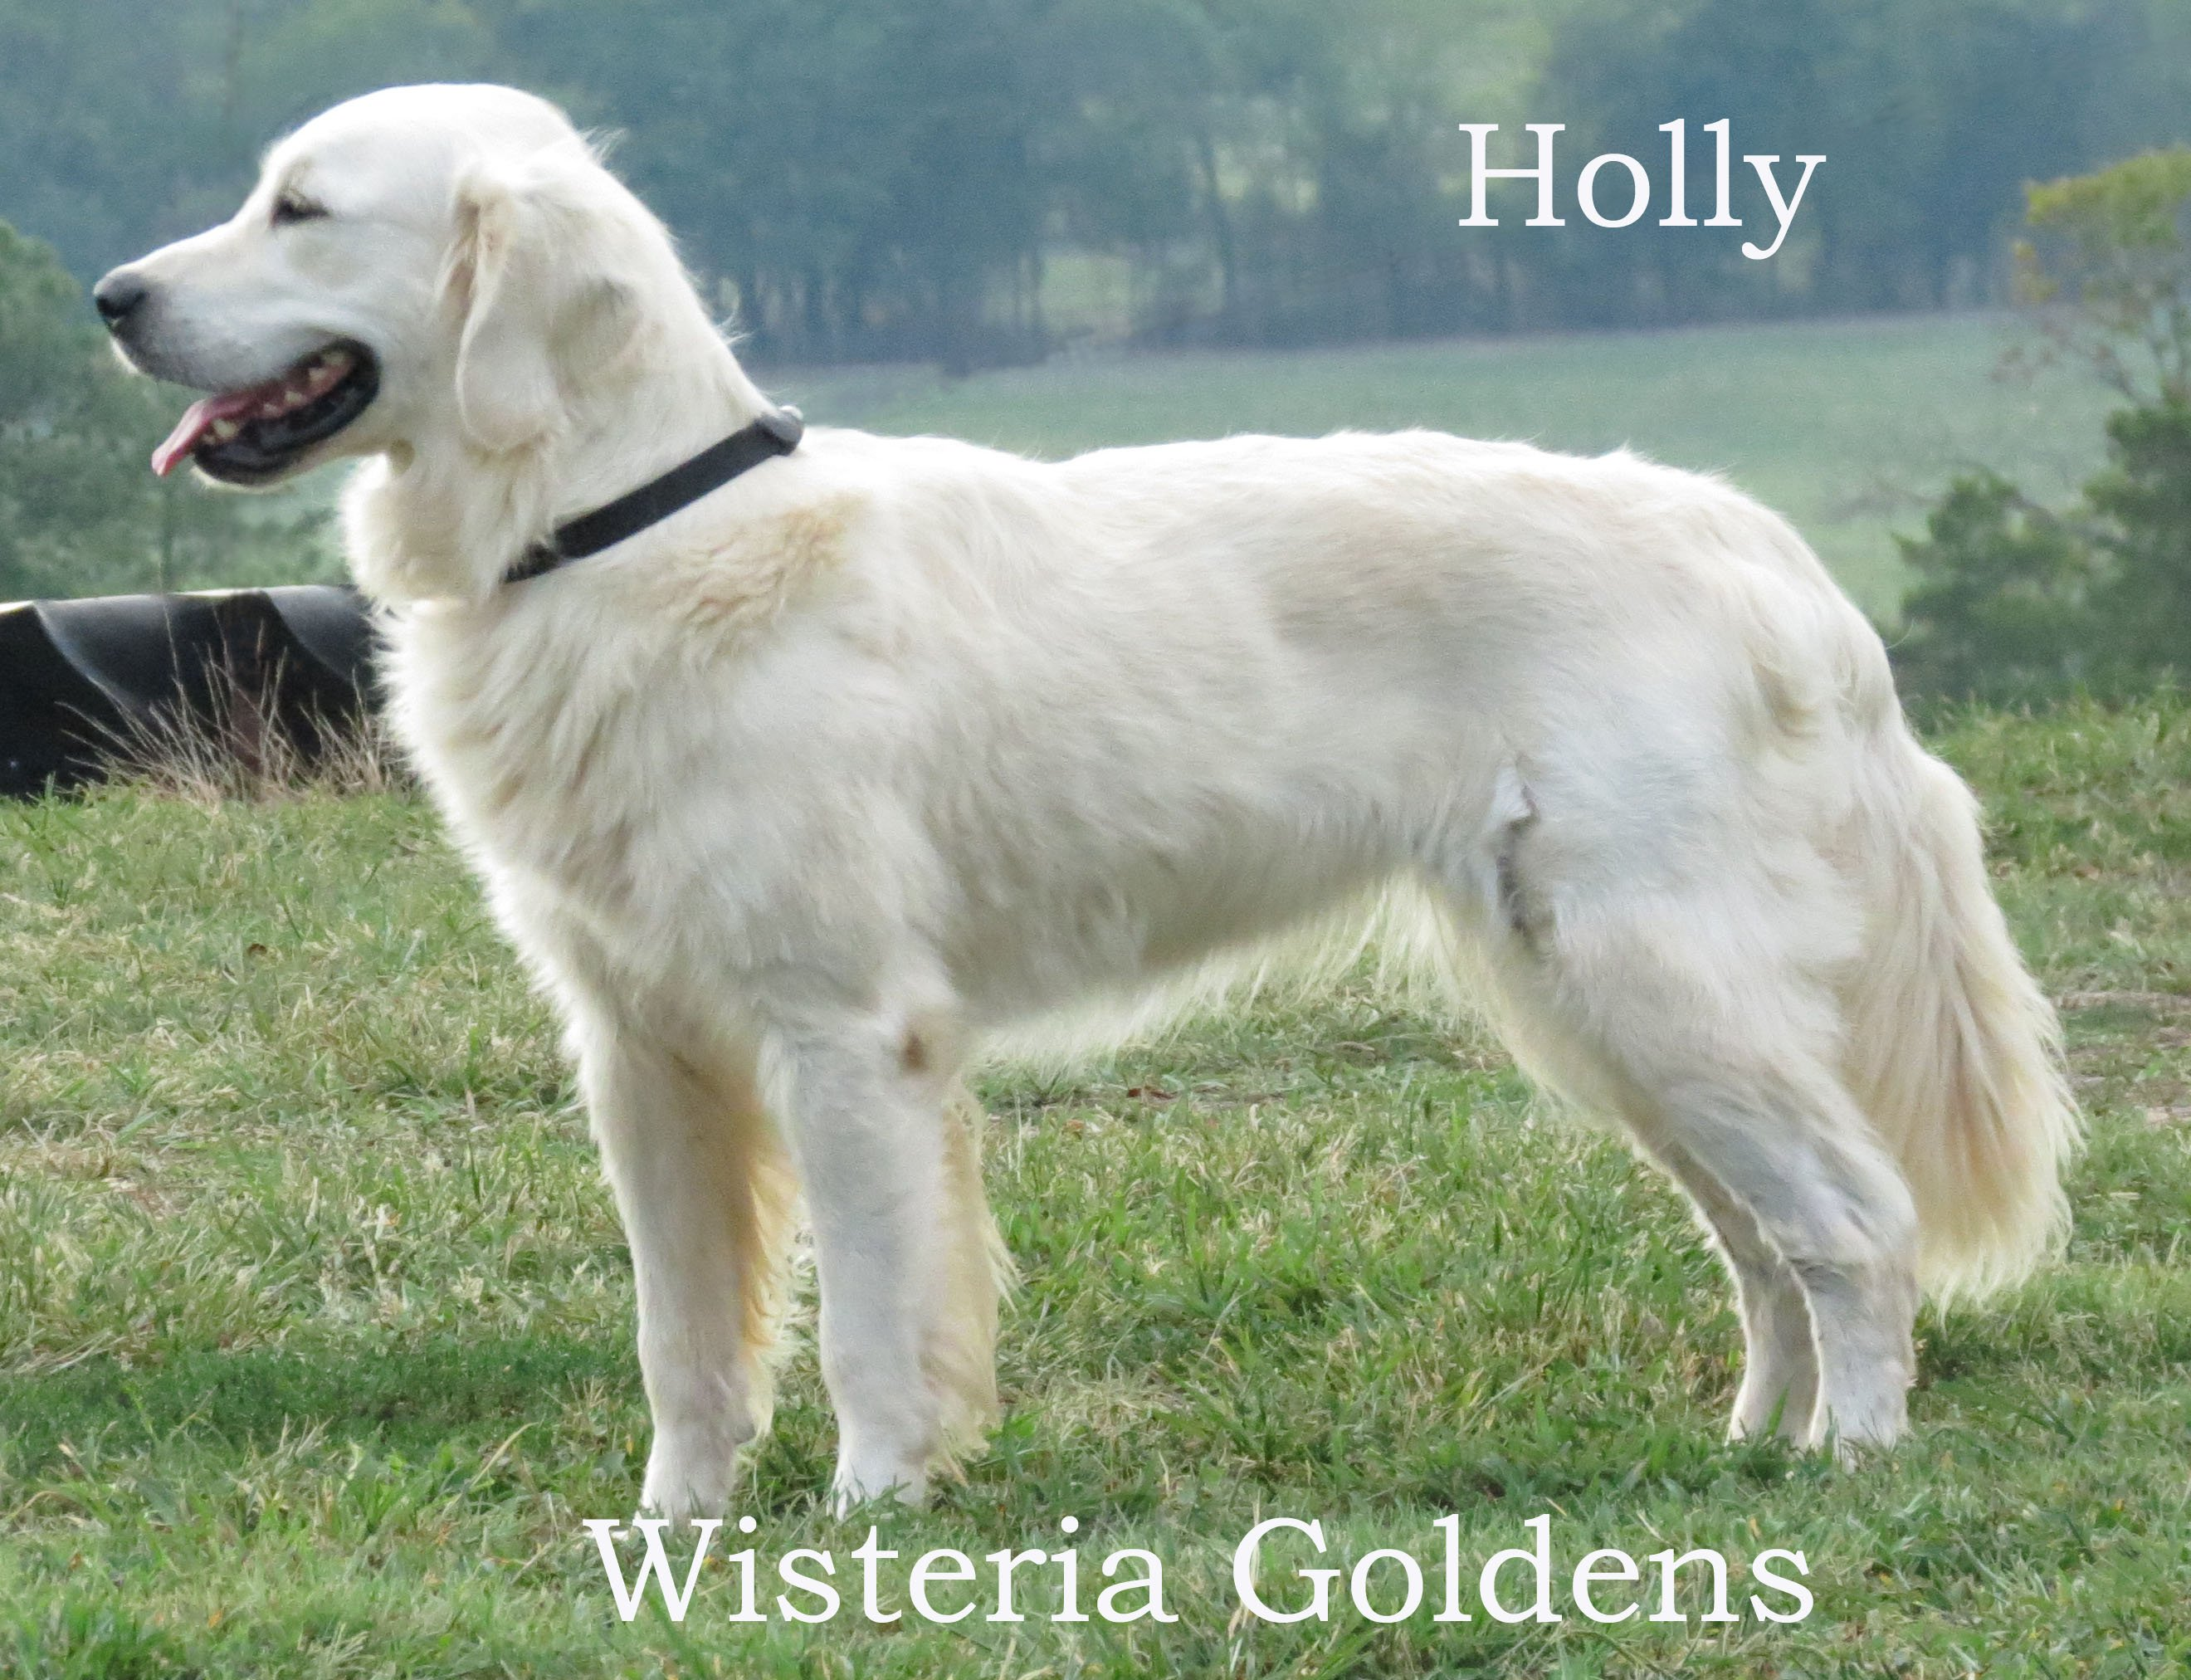 holly-full-english-creme-golden-retriever-wisteria-goldens_0006_1